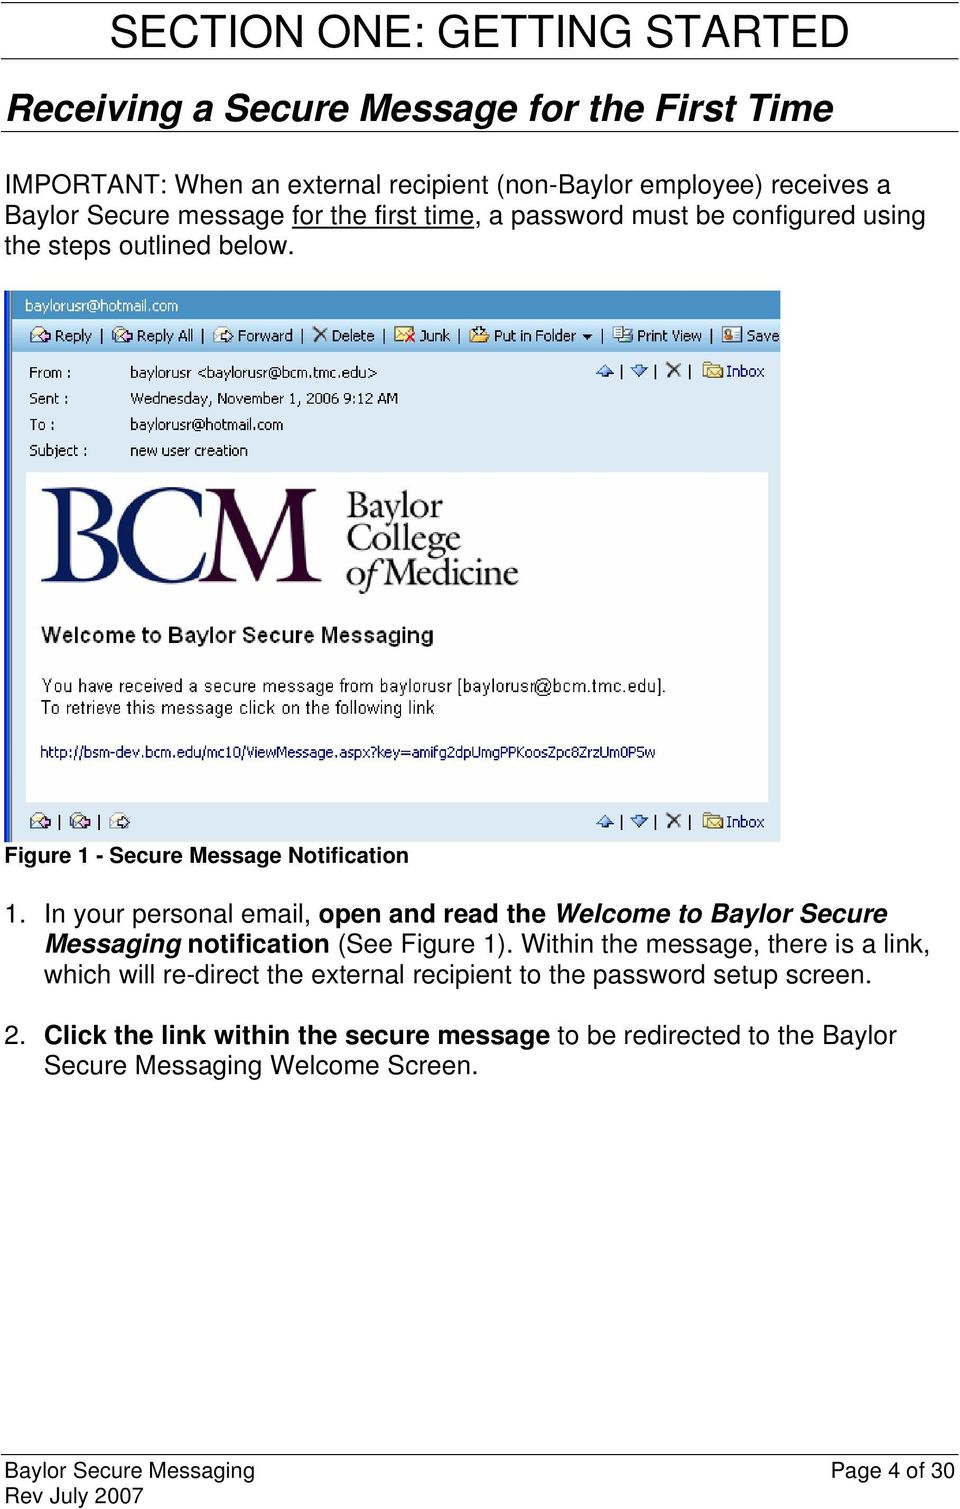 In your personal email, open and read the Welcome to Baylor Secure Messaging notification (See Figure 1).